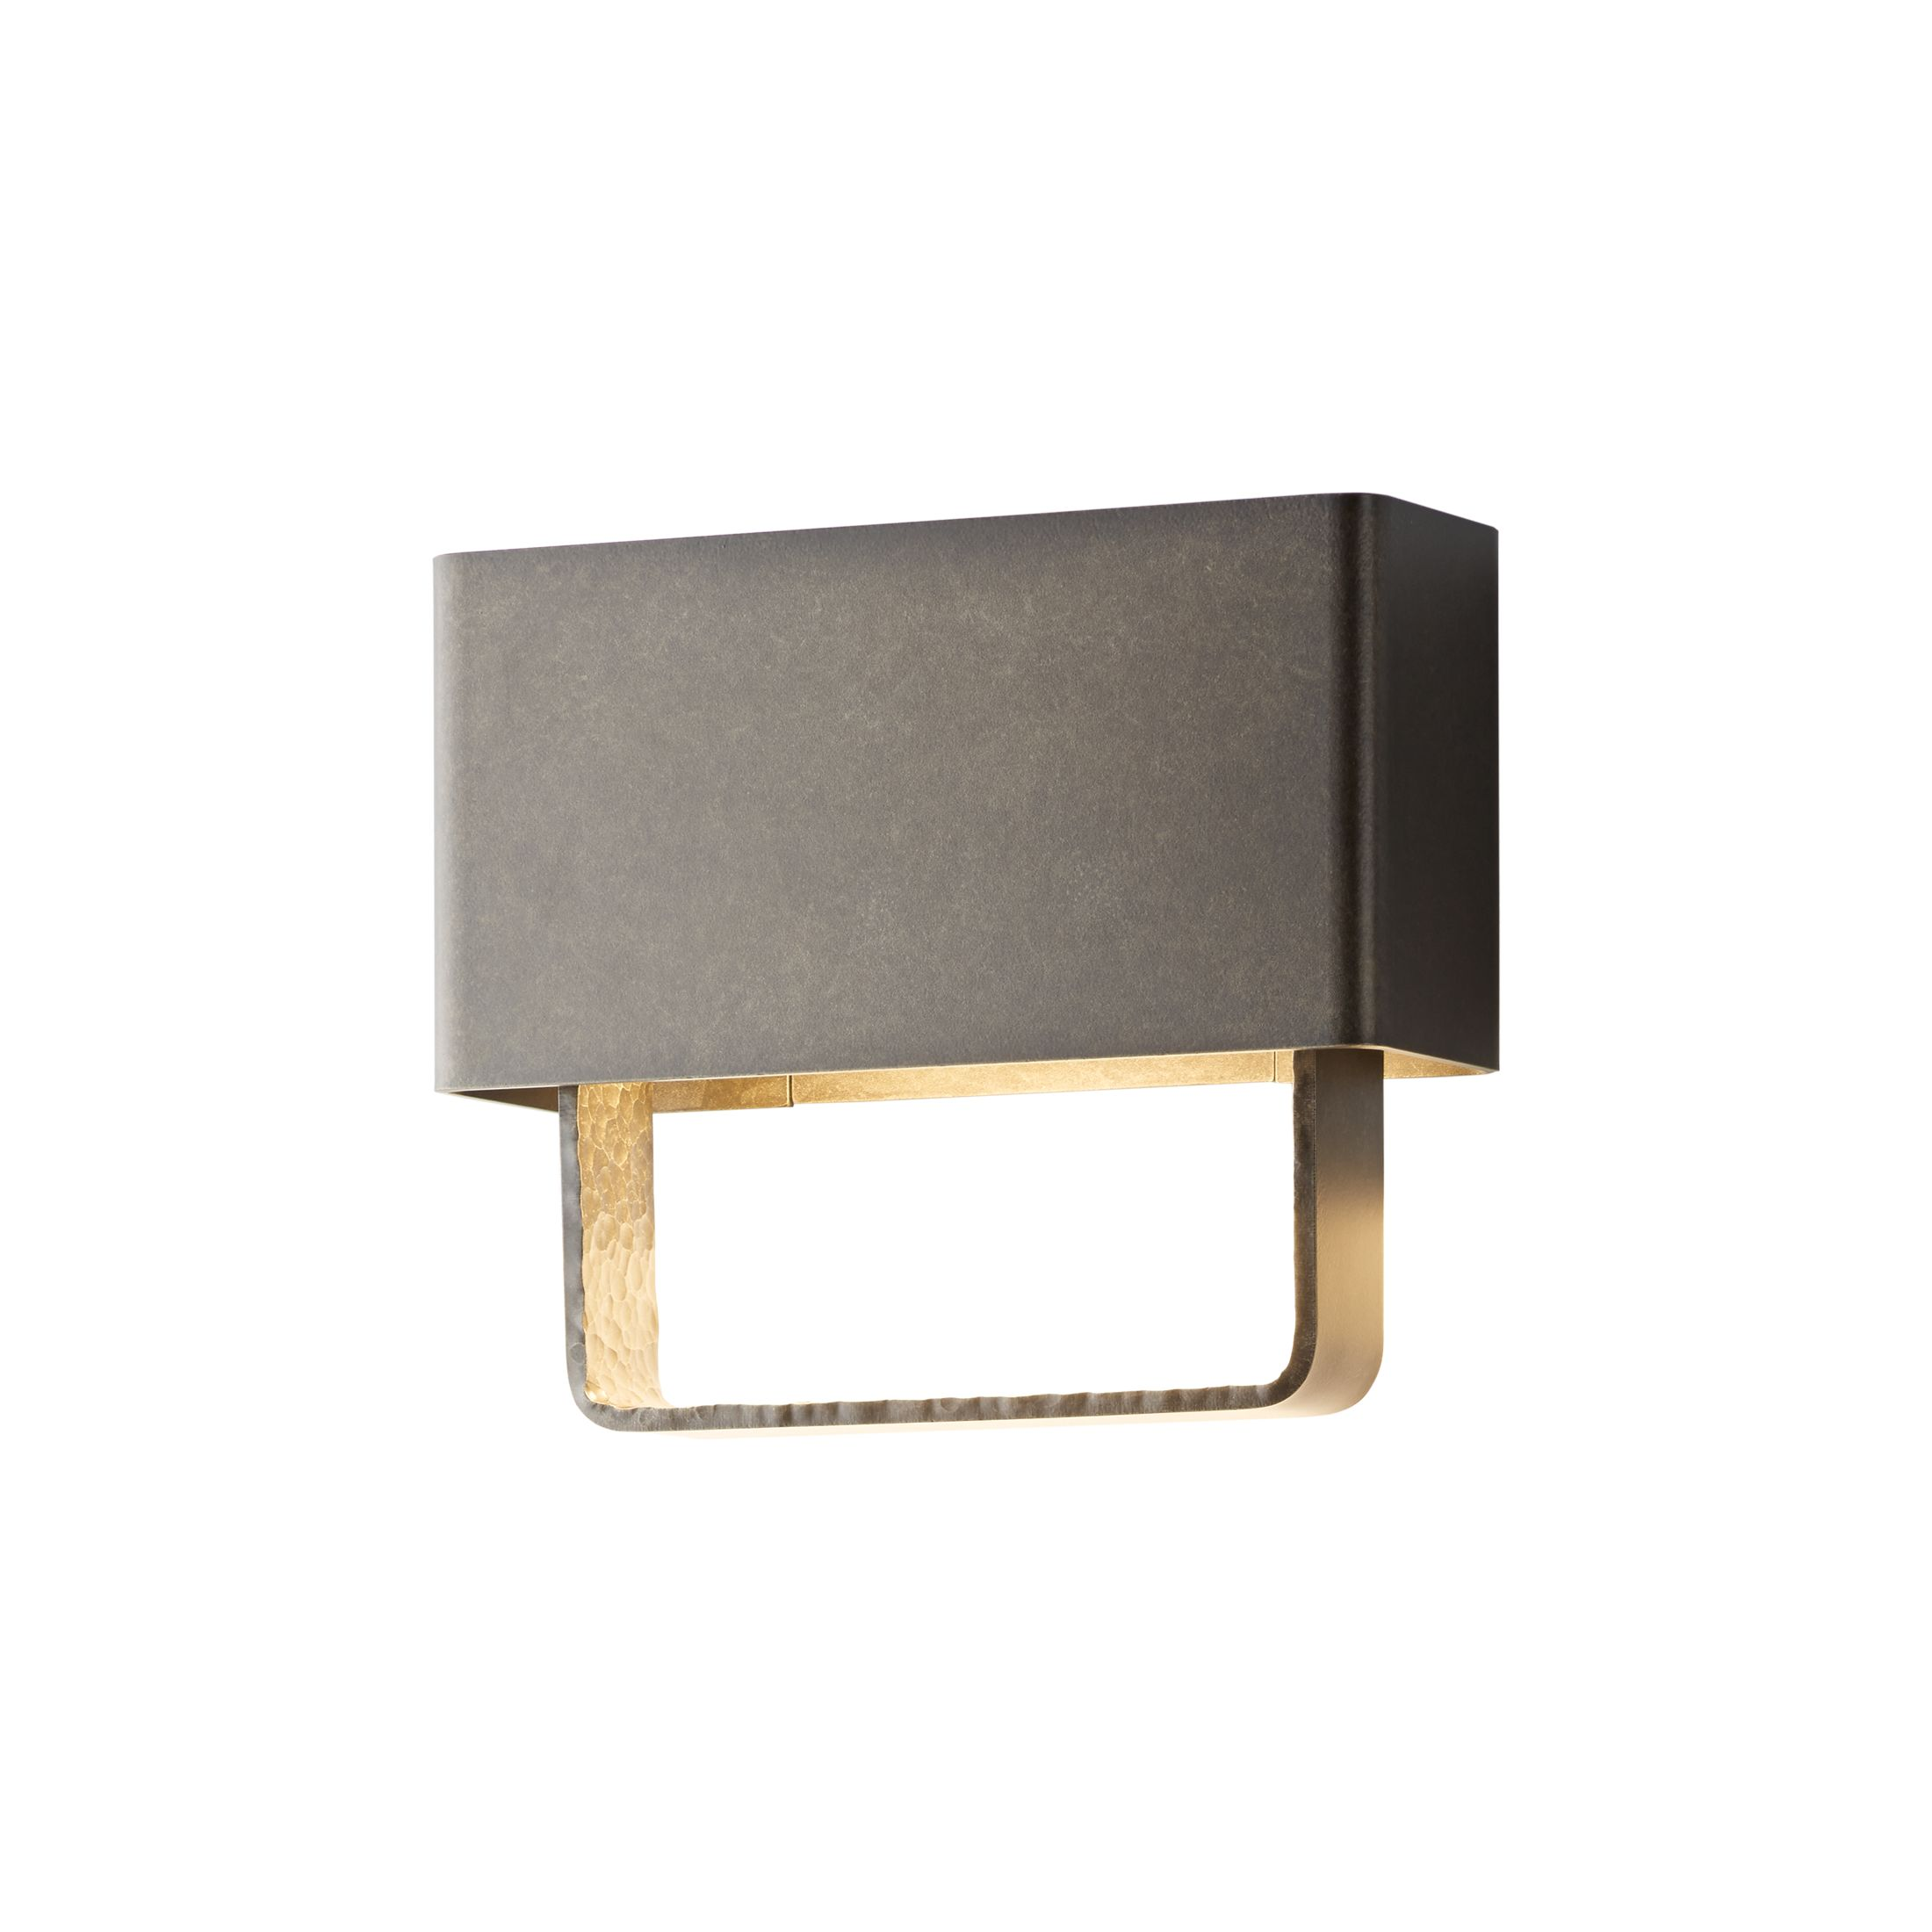 Quad small led outdoor sconce hubbardton forge product detail quad small led outdoor sconce amipublicfo Images